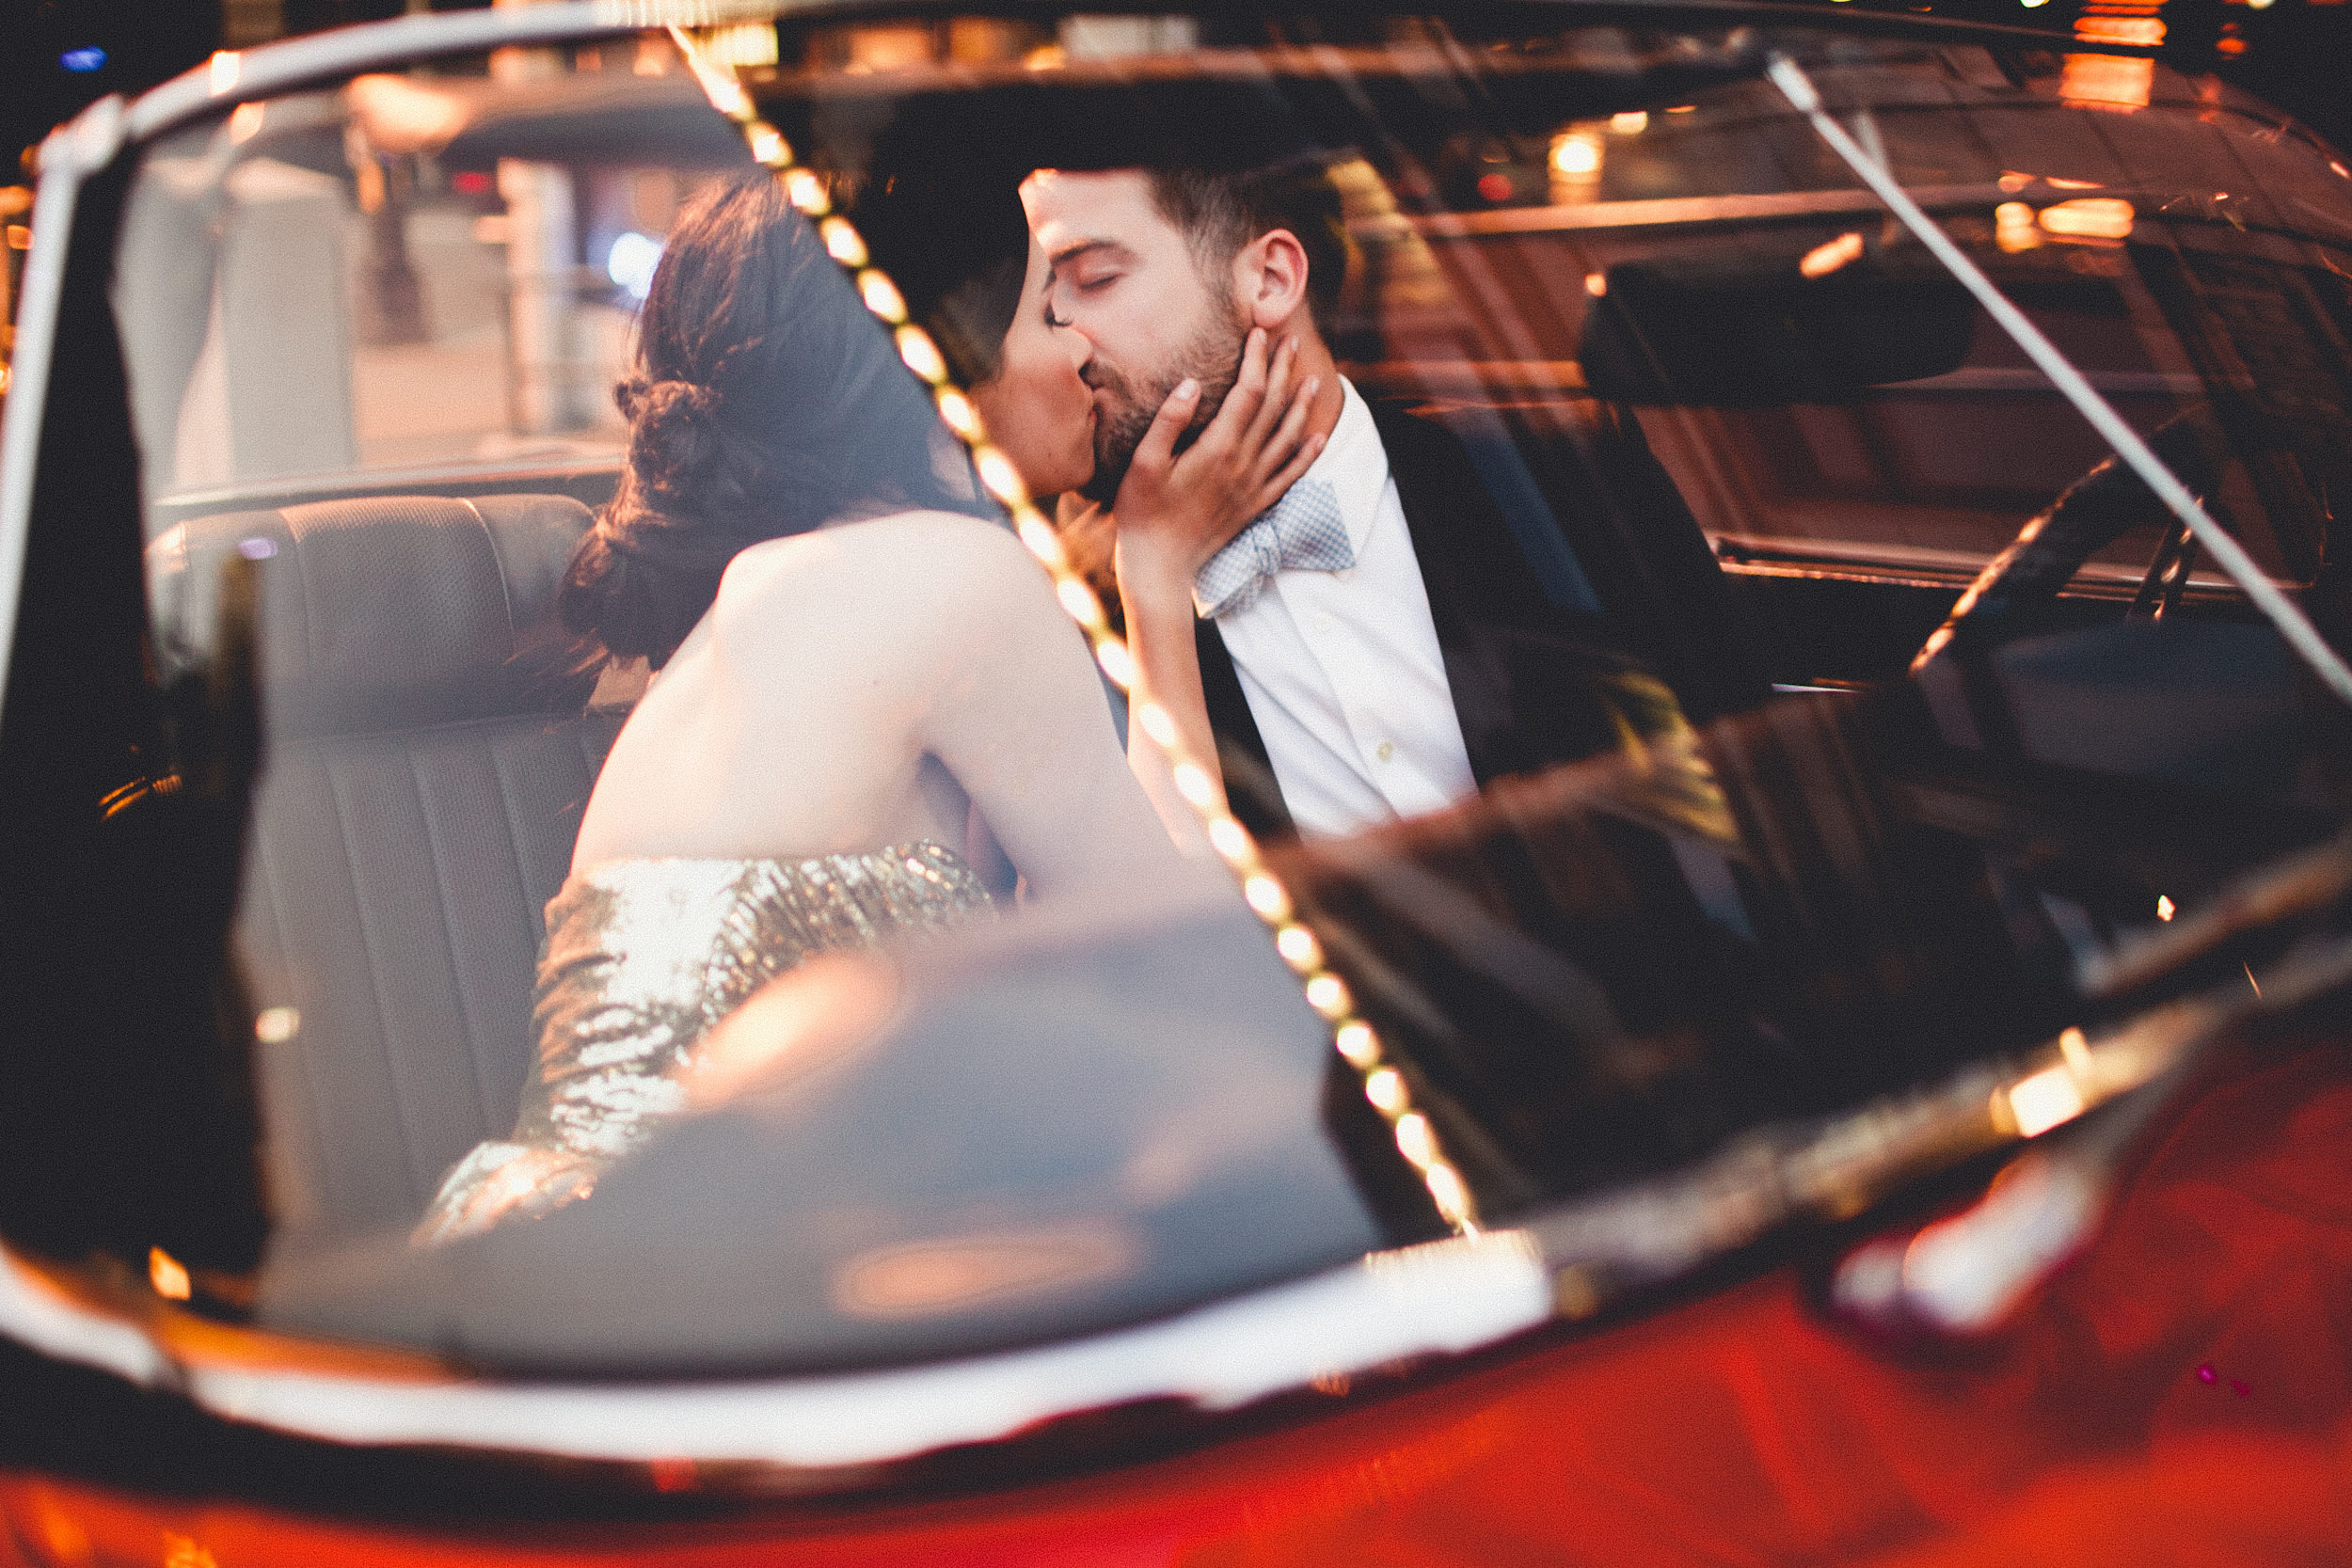 Image 15 of Cute Engagement Photo Ideas and Poses: Find Inspiration for Your Own Shoot!